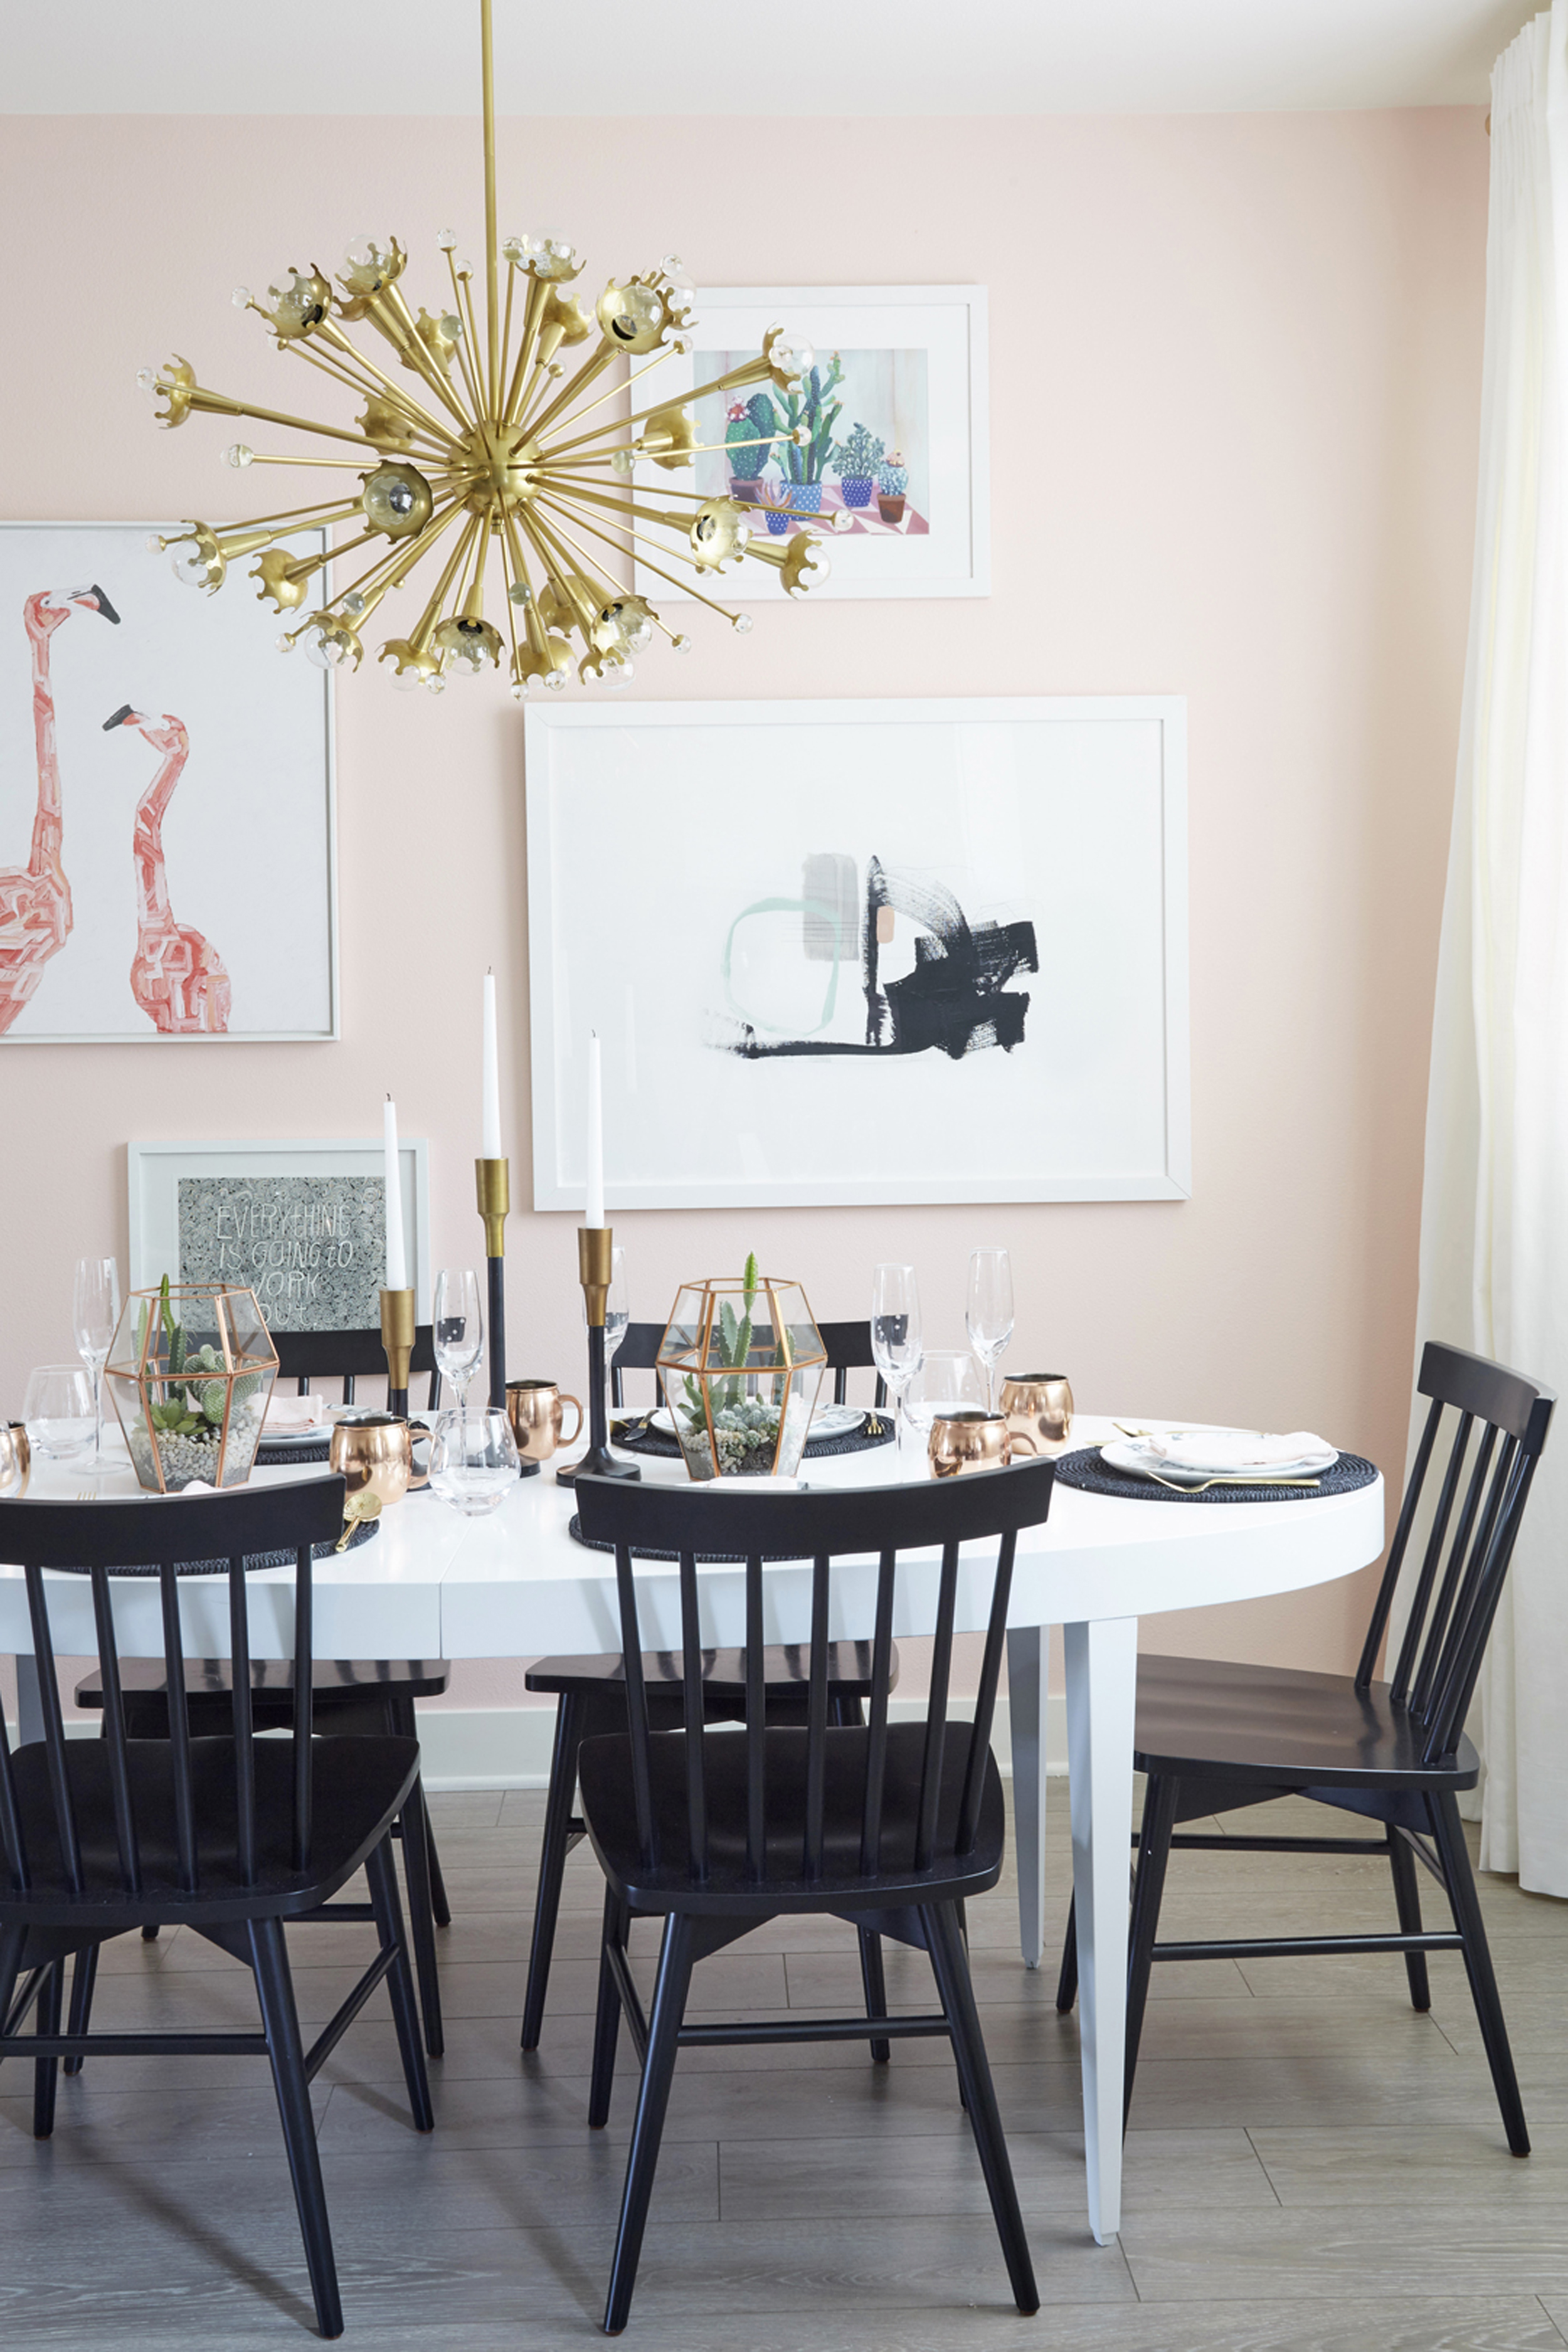 Dining Room Rules The Cheat Sheet You've Been Waiting For 3